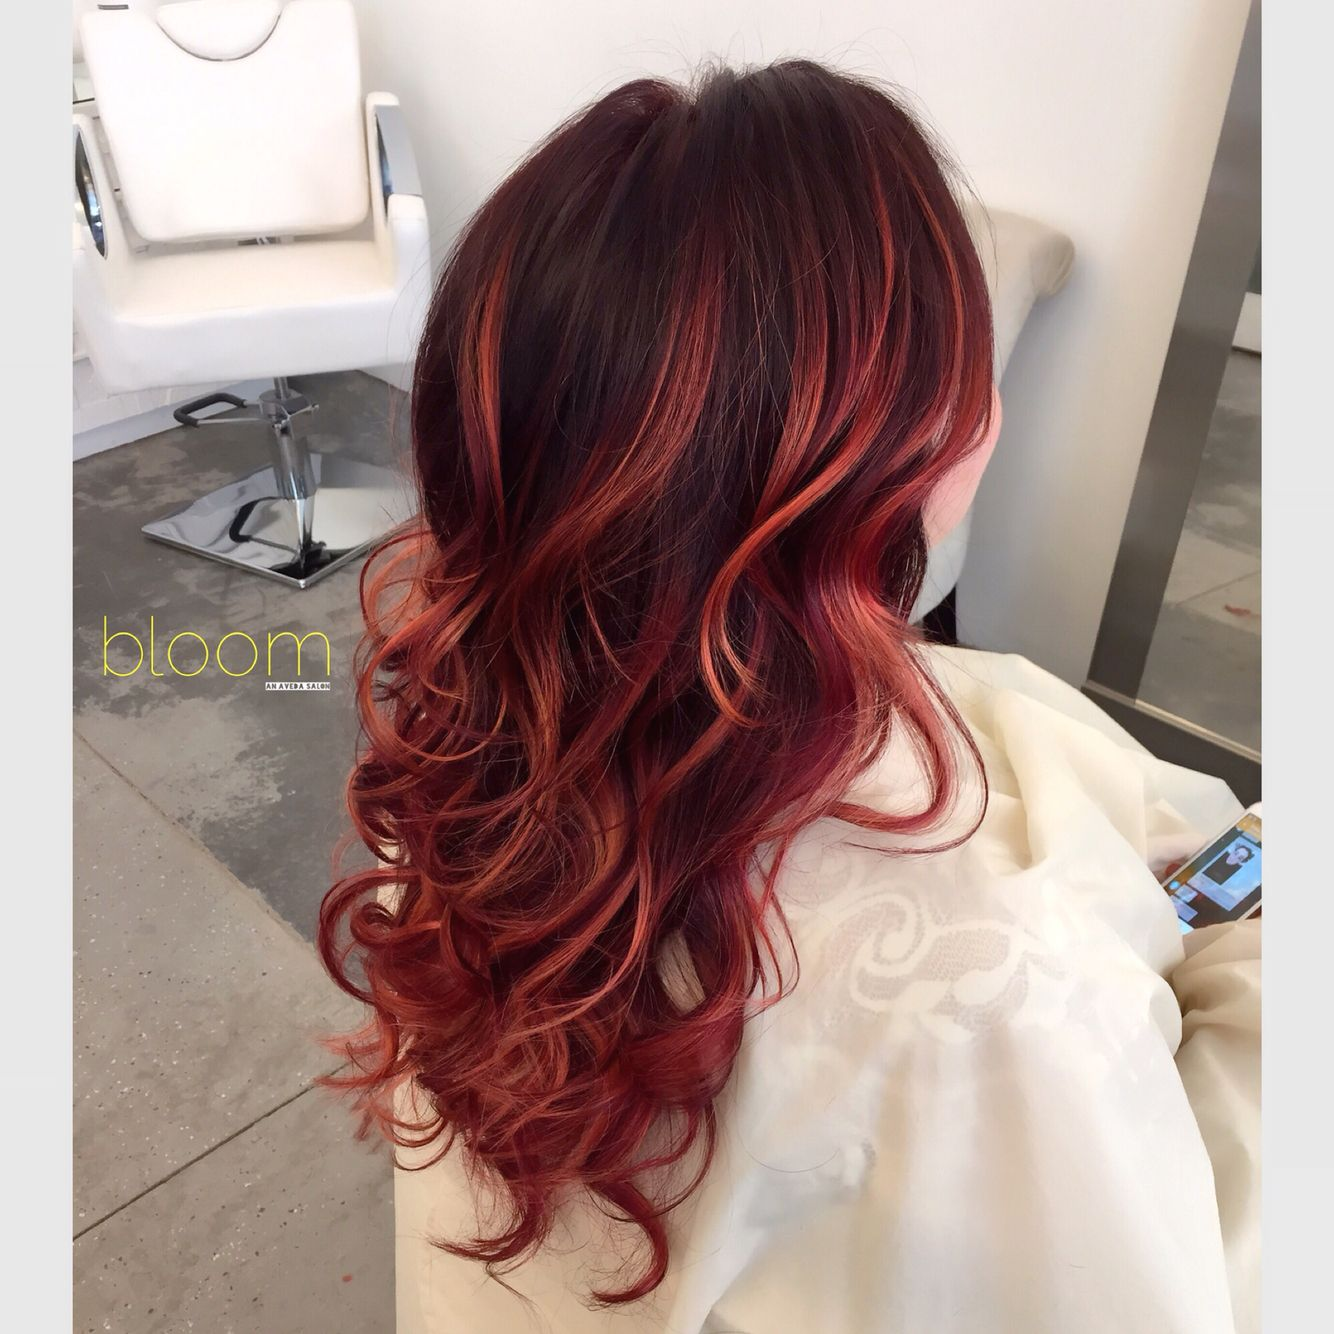 Copper balayage highlights on vivid red long hair. By bloom stylist Samantha #copperbalayage